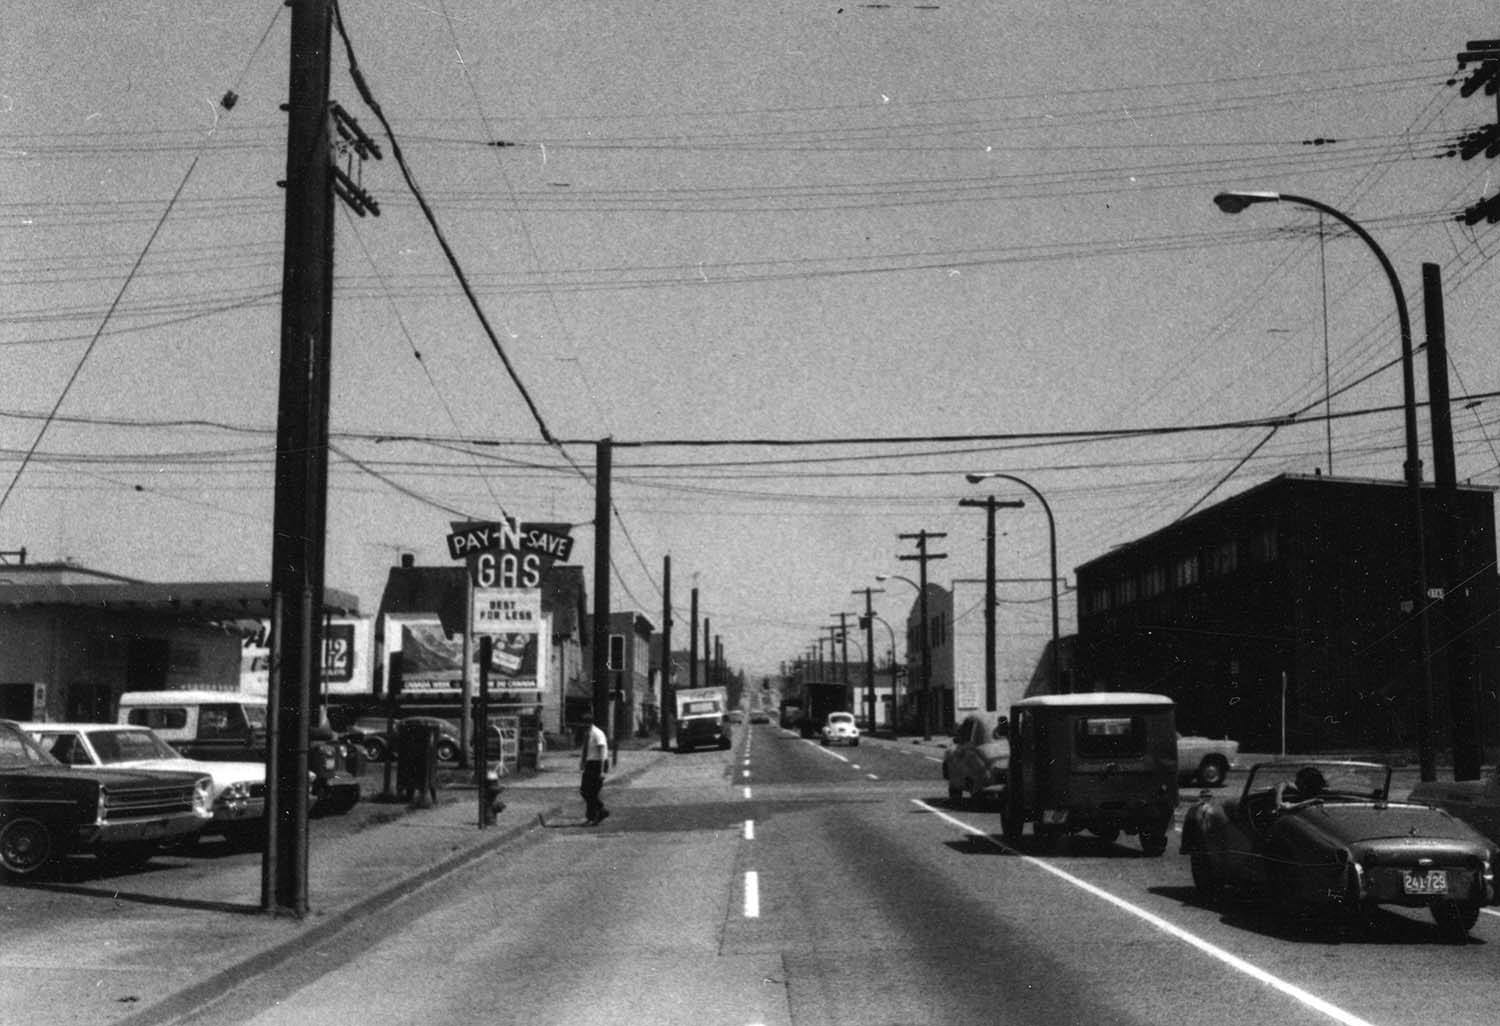 Aspect looking east along Prior Street with subject property [Iberica Garage and Northland Cafe 219 - 221 Prior Street] on left side, 1969. Reference code COV-S168-: CVA 203-58